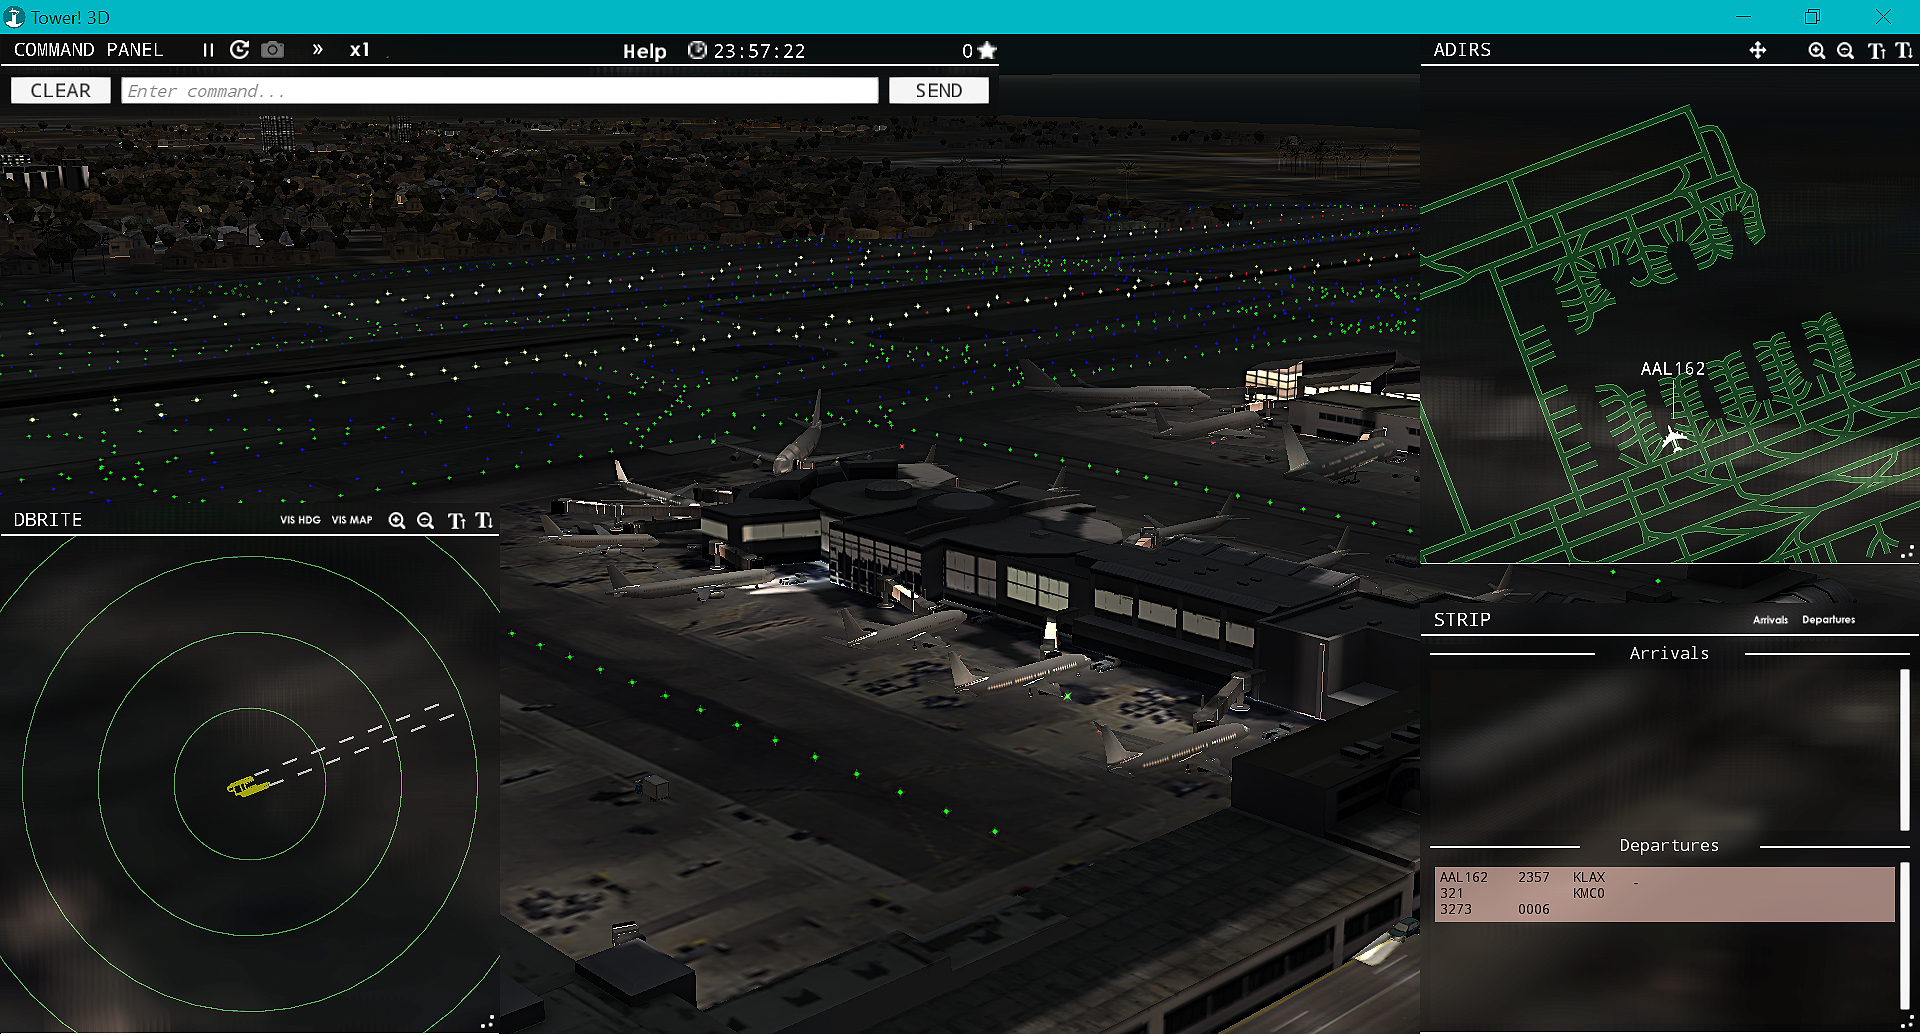 NYERGES DESIGN - REAL TRAFFIC FOR TOWER! 3D